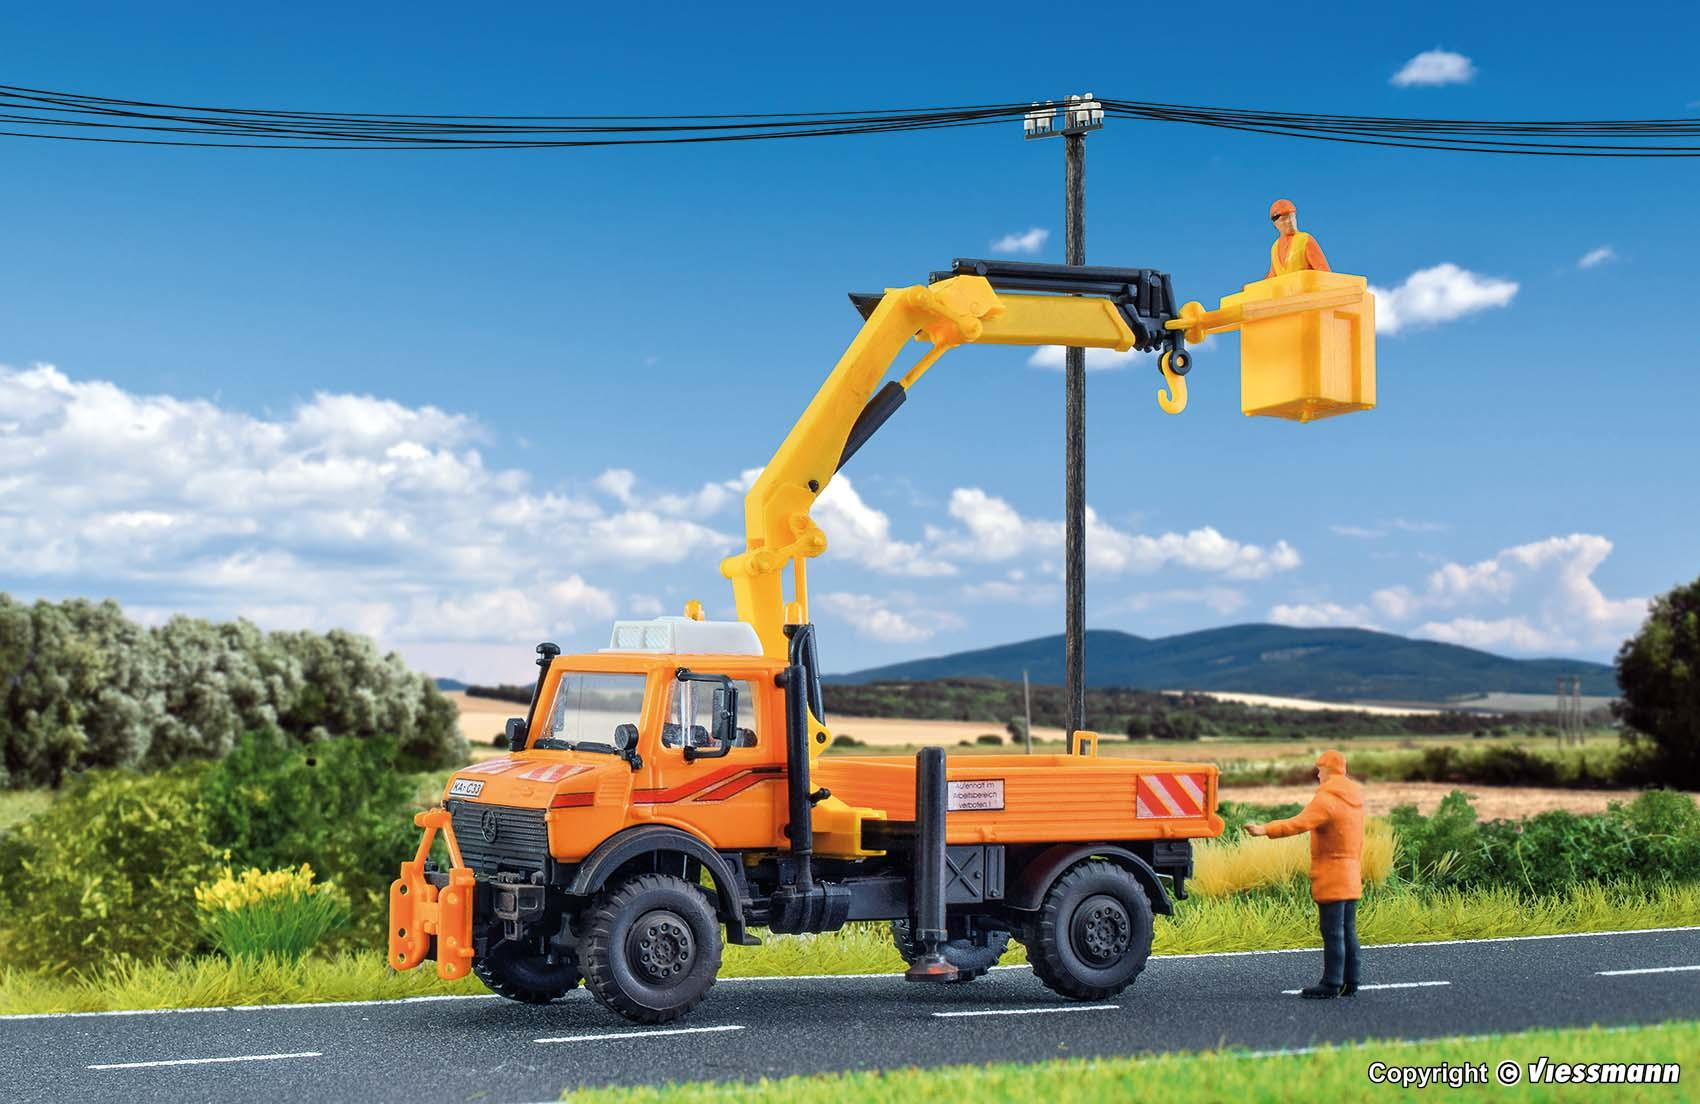 Kibri 15005 UNIMOG with working crane and